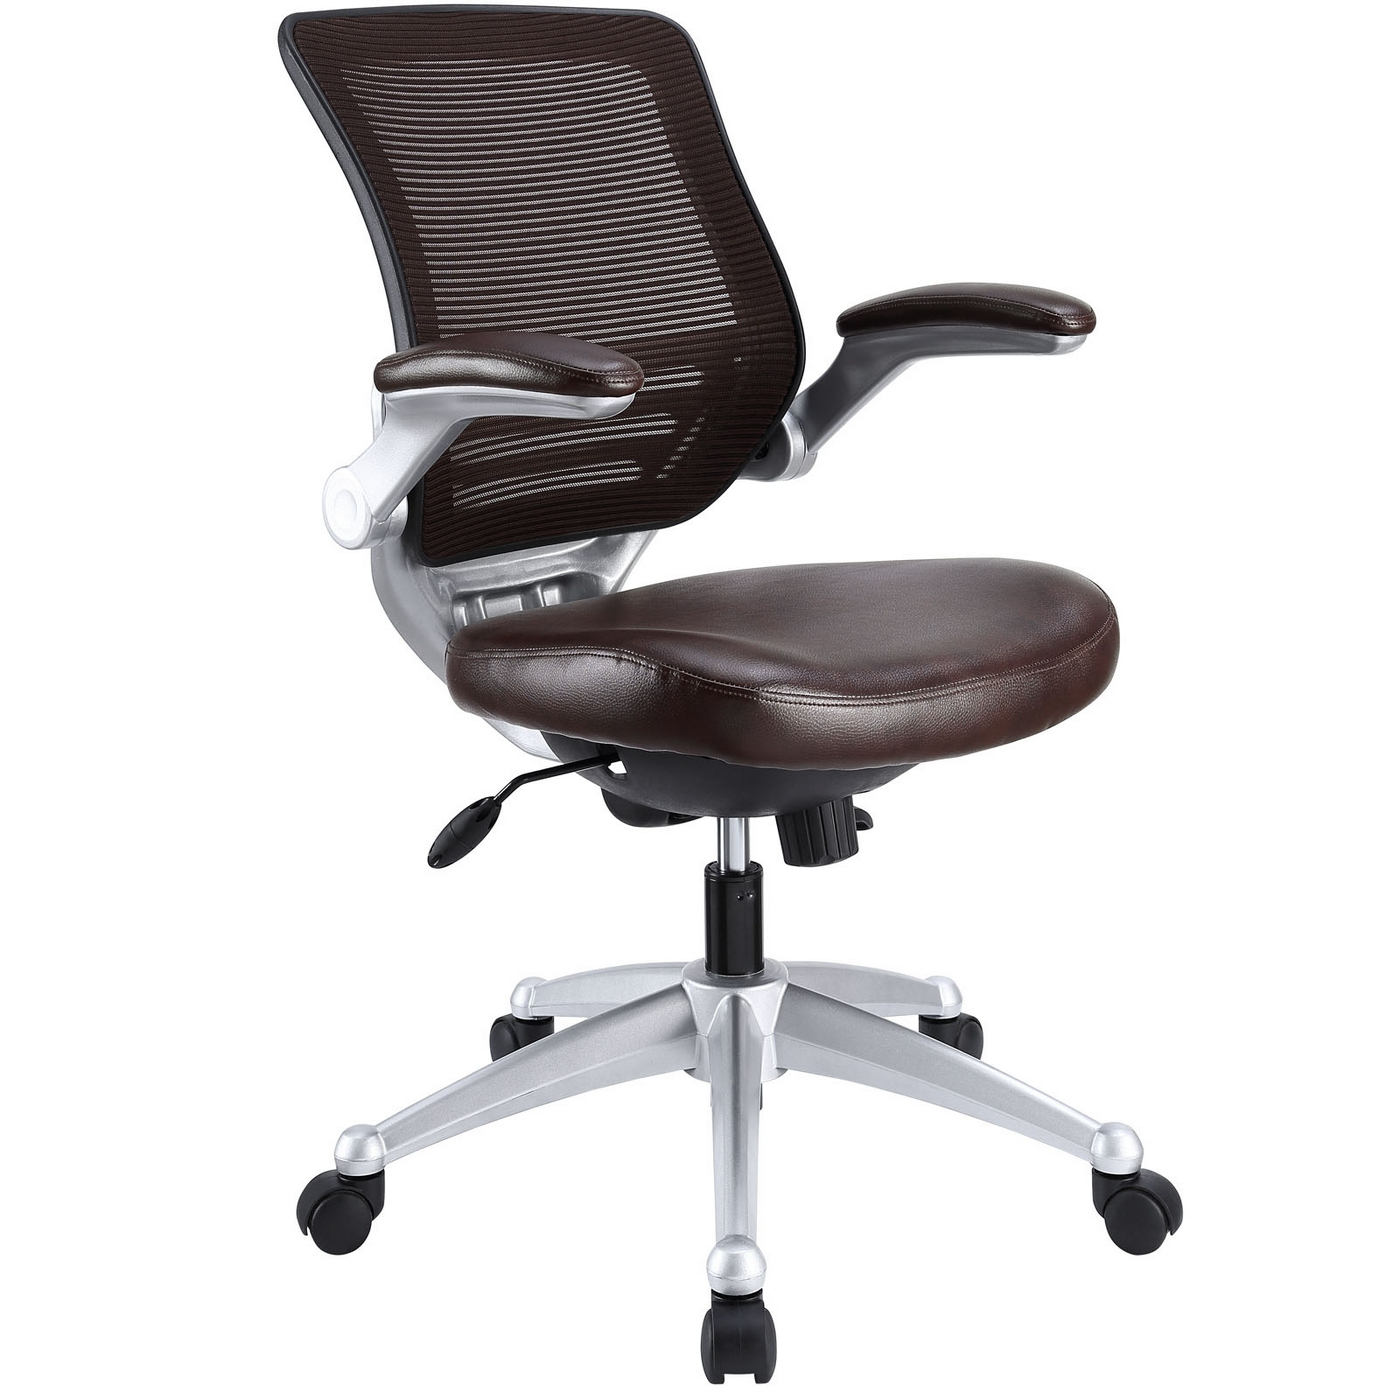 Edge modern adjustable ergonomic leather office chair w for Modern leather office chairs